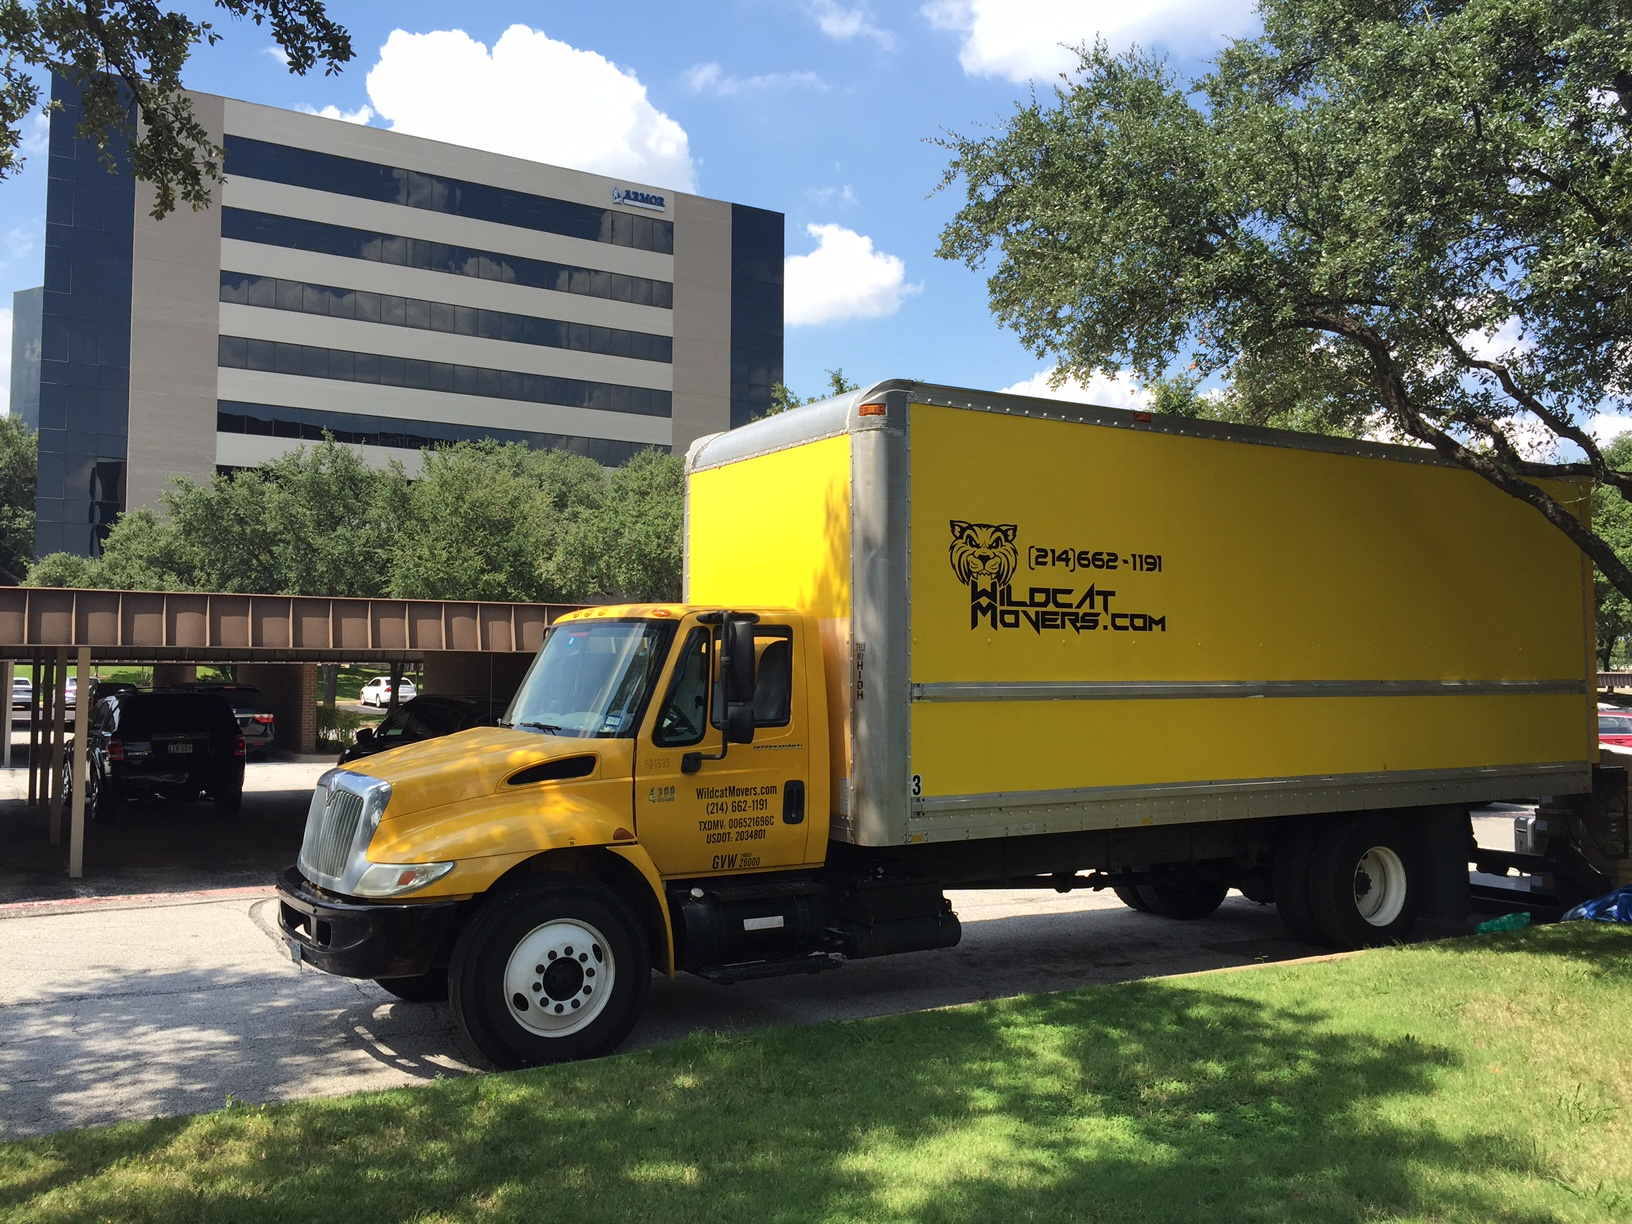 Wildcat Movers Commercial Office Moving